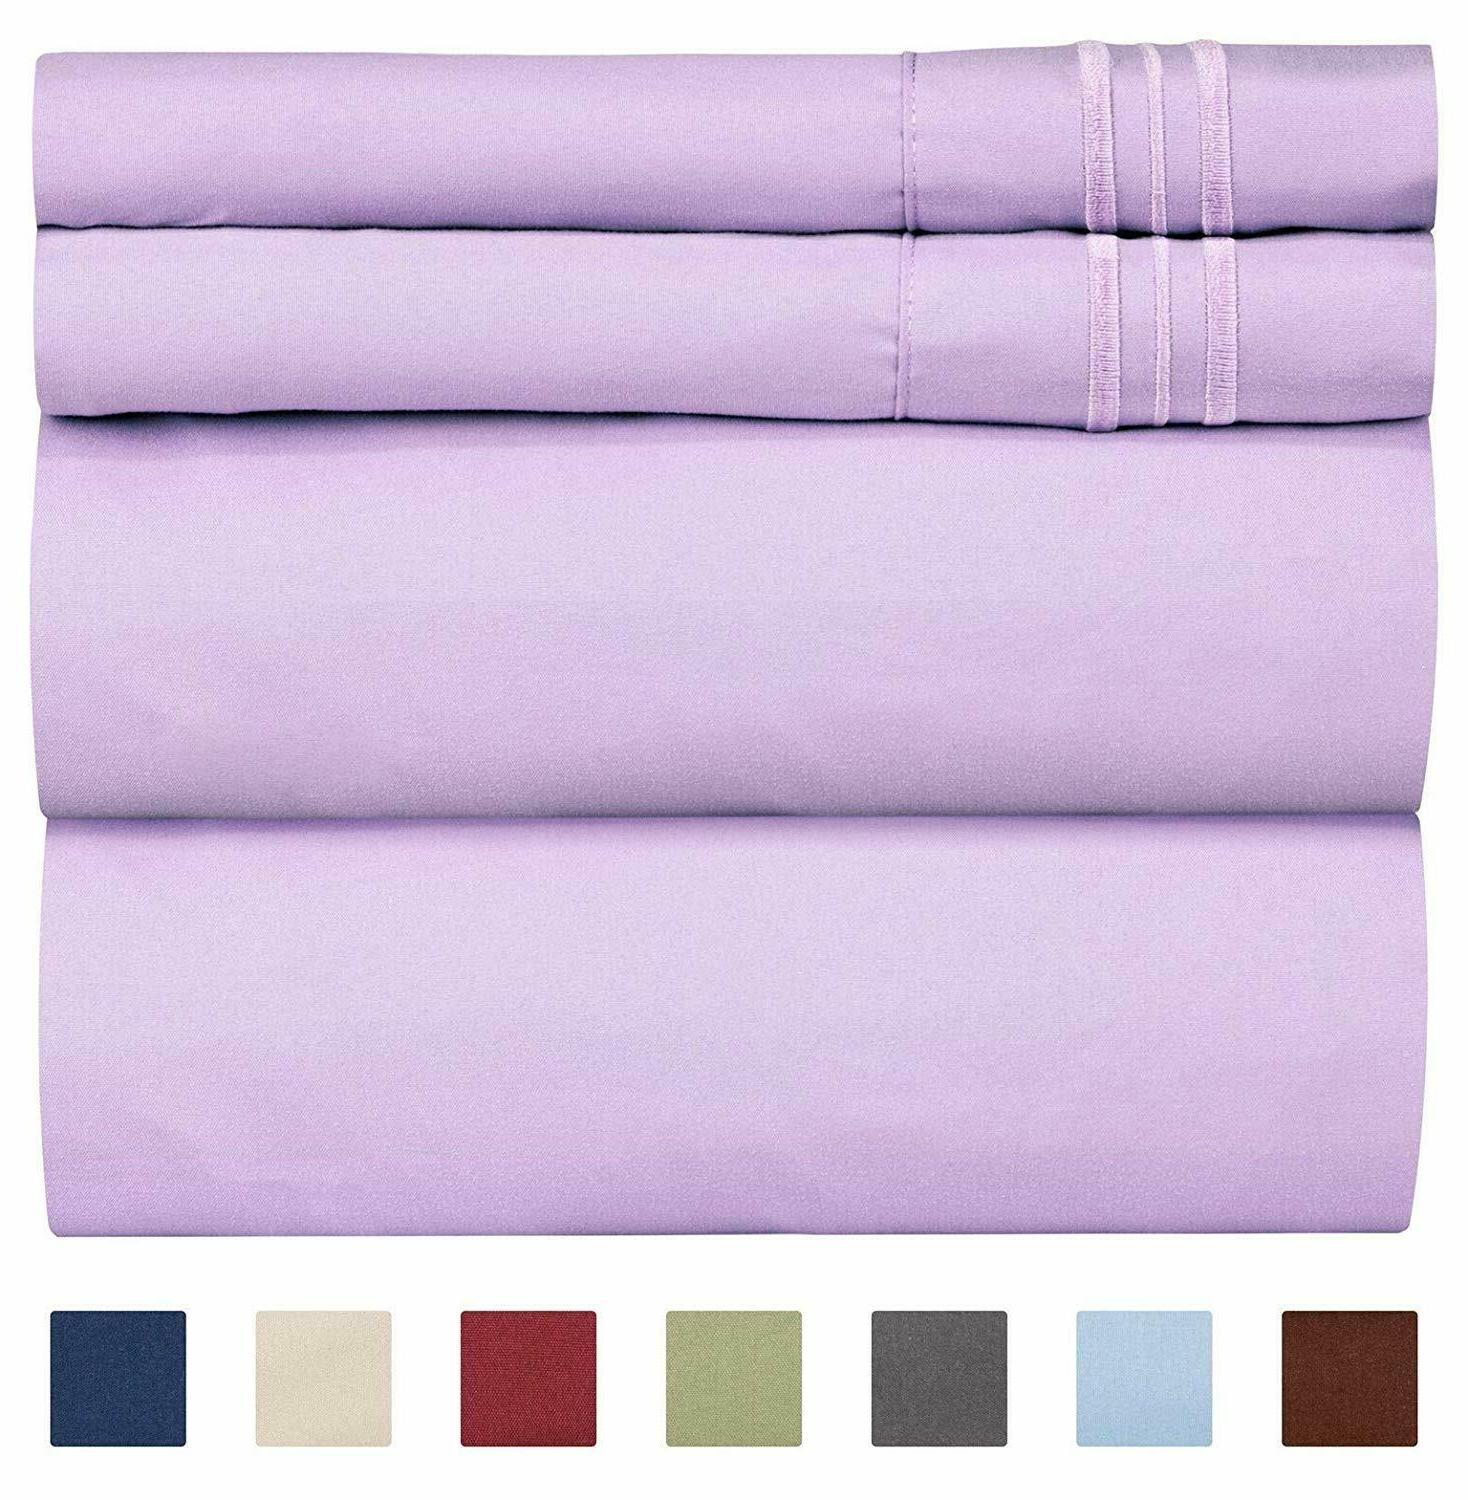 Queen Size Sheet Wrinkle Bed Sheets Home 4 Pcs